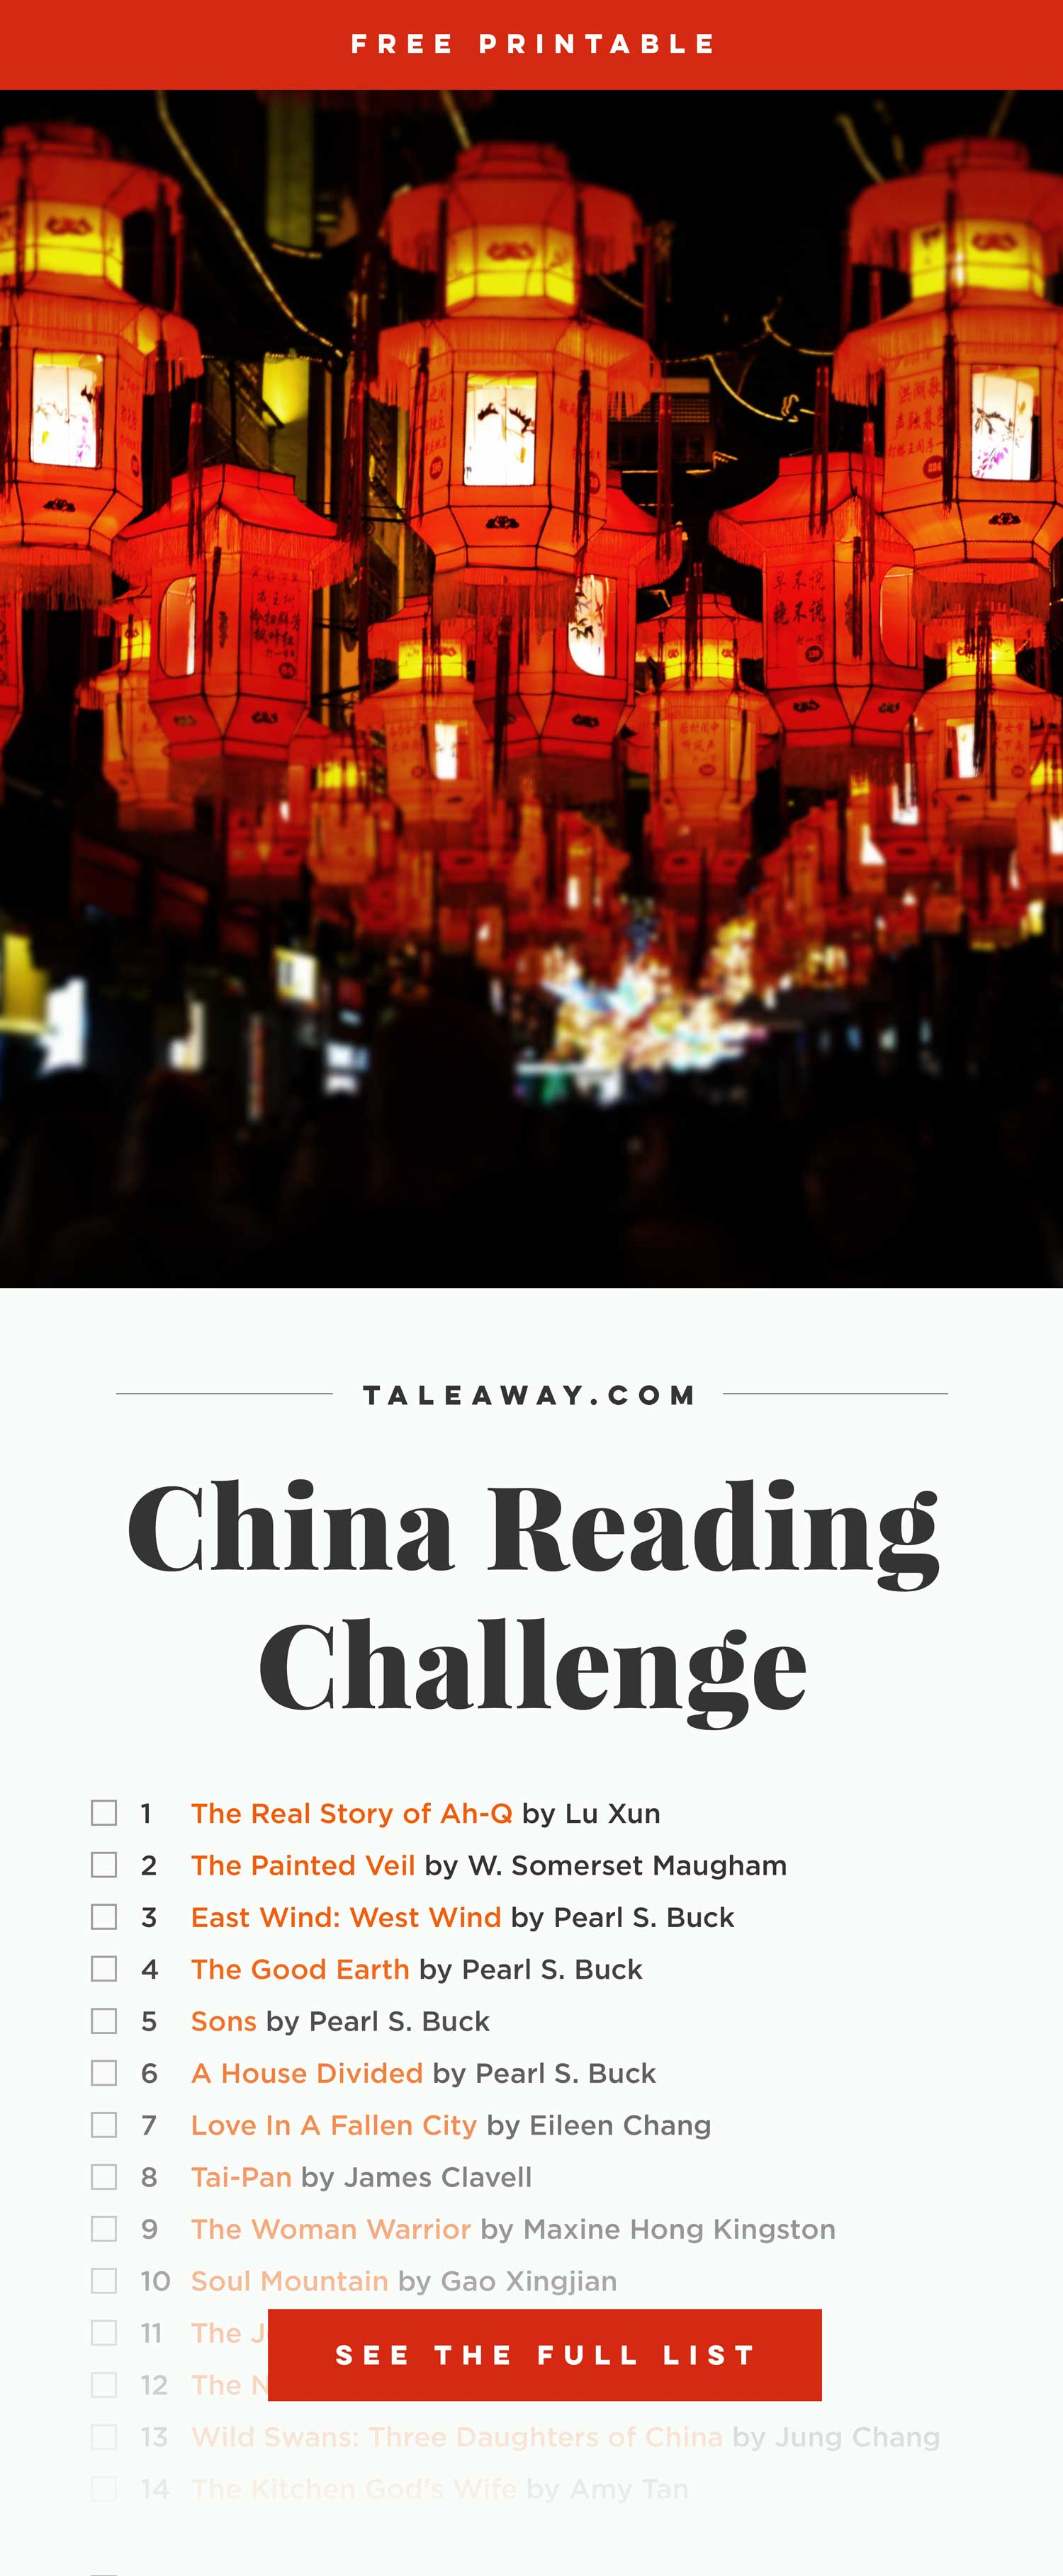 Books Set In China - For more books that inspire travel visit www.taleway.com. books set in china, books set in shanghai, books set in beijing, best books about china, chinese novels, chinese literature, chinese authors, contemporary novels set in china, best novels set in china, china travel, china packing, china books, books about chinese history, books on chinese culture, books on chinese travel